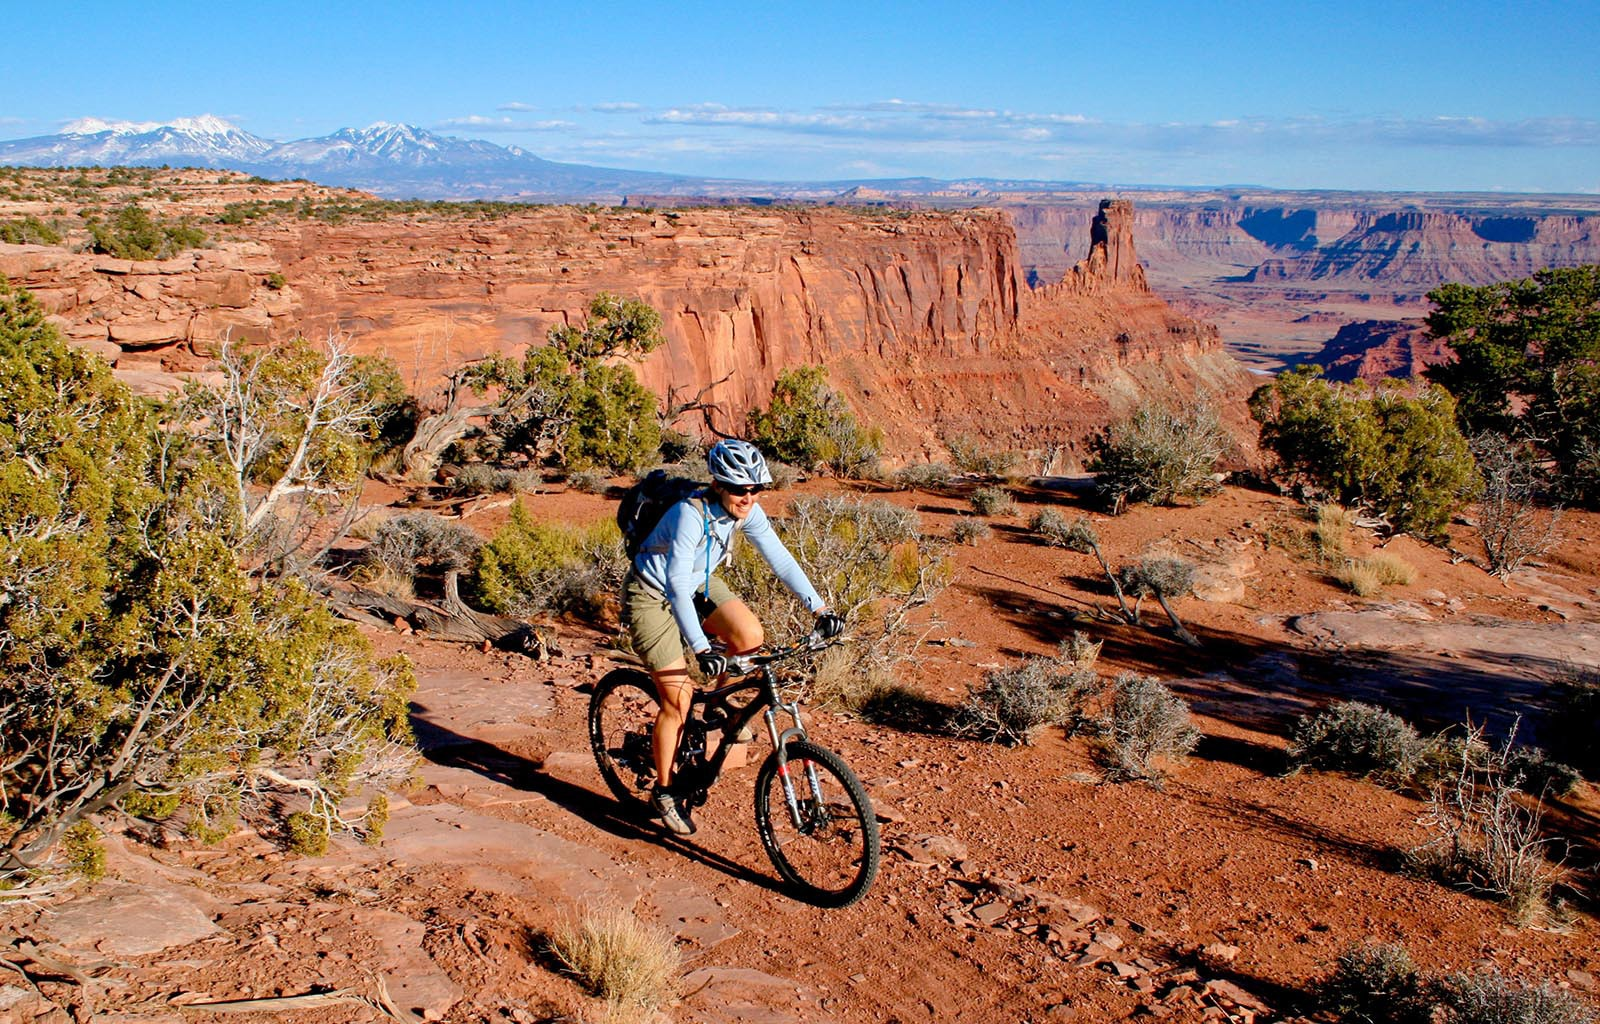 mountain center single girls Shop for kids' bikes at rei - free shipping with $50 minimum purchase top quality, great selection and expert advice you can trust 100% satisfaction guarantee.